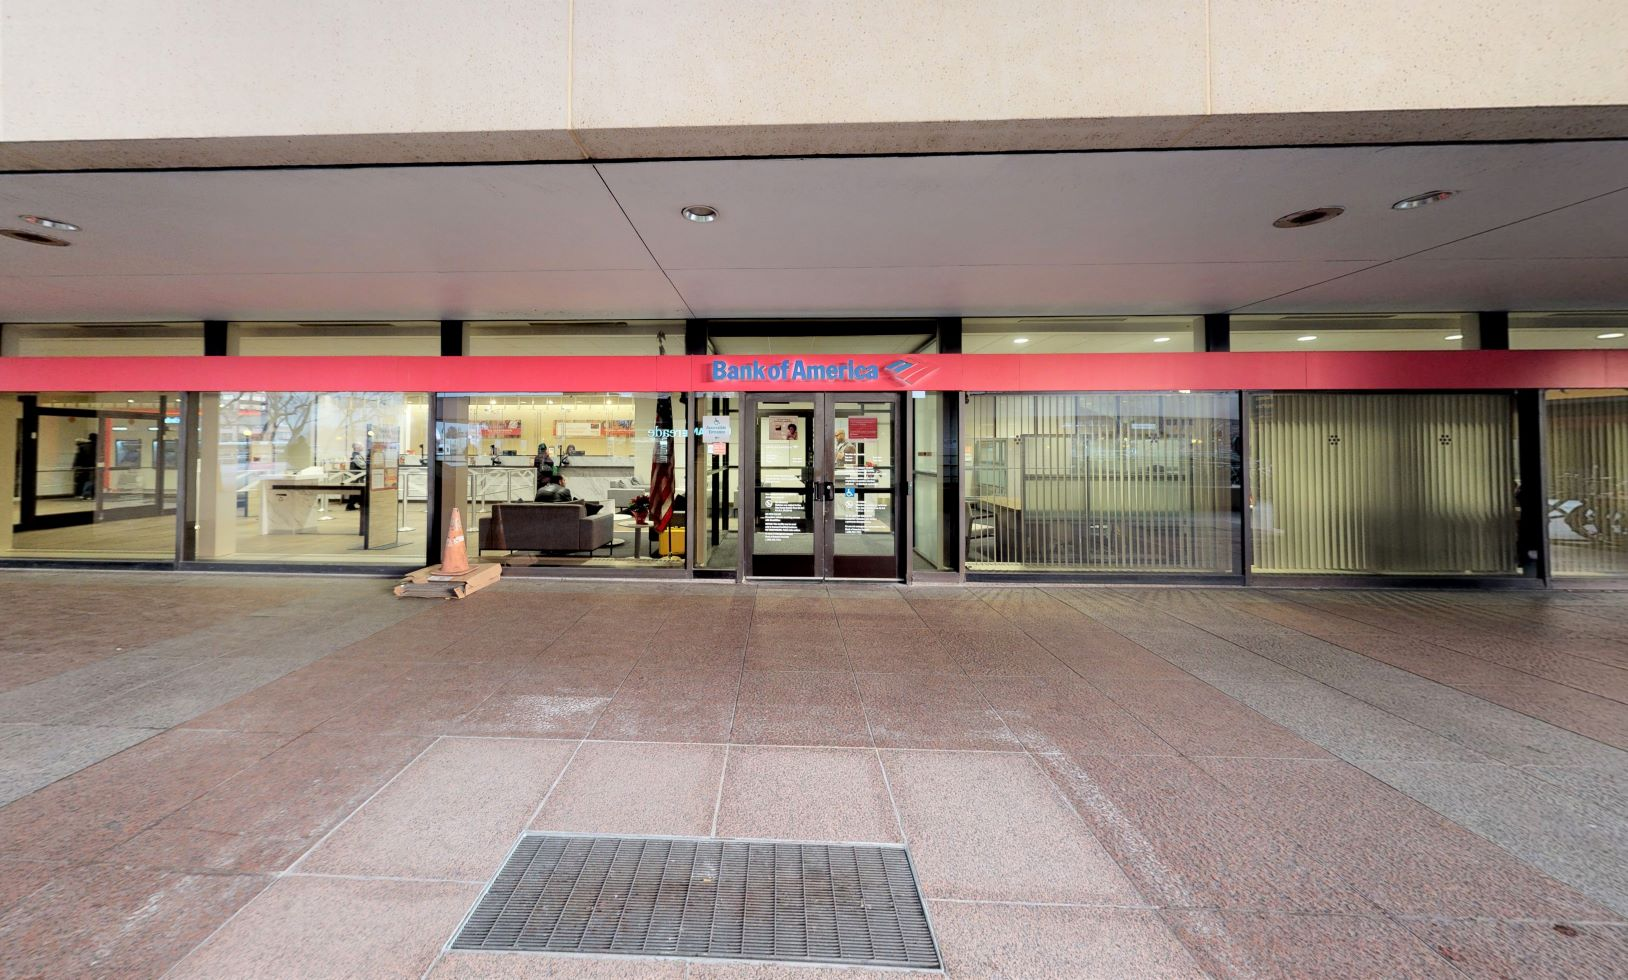 Bank of America financial center with walk-up ATM | 12 Path Plz, Jersey City, NJ 07306